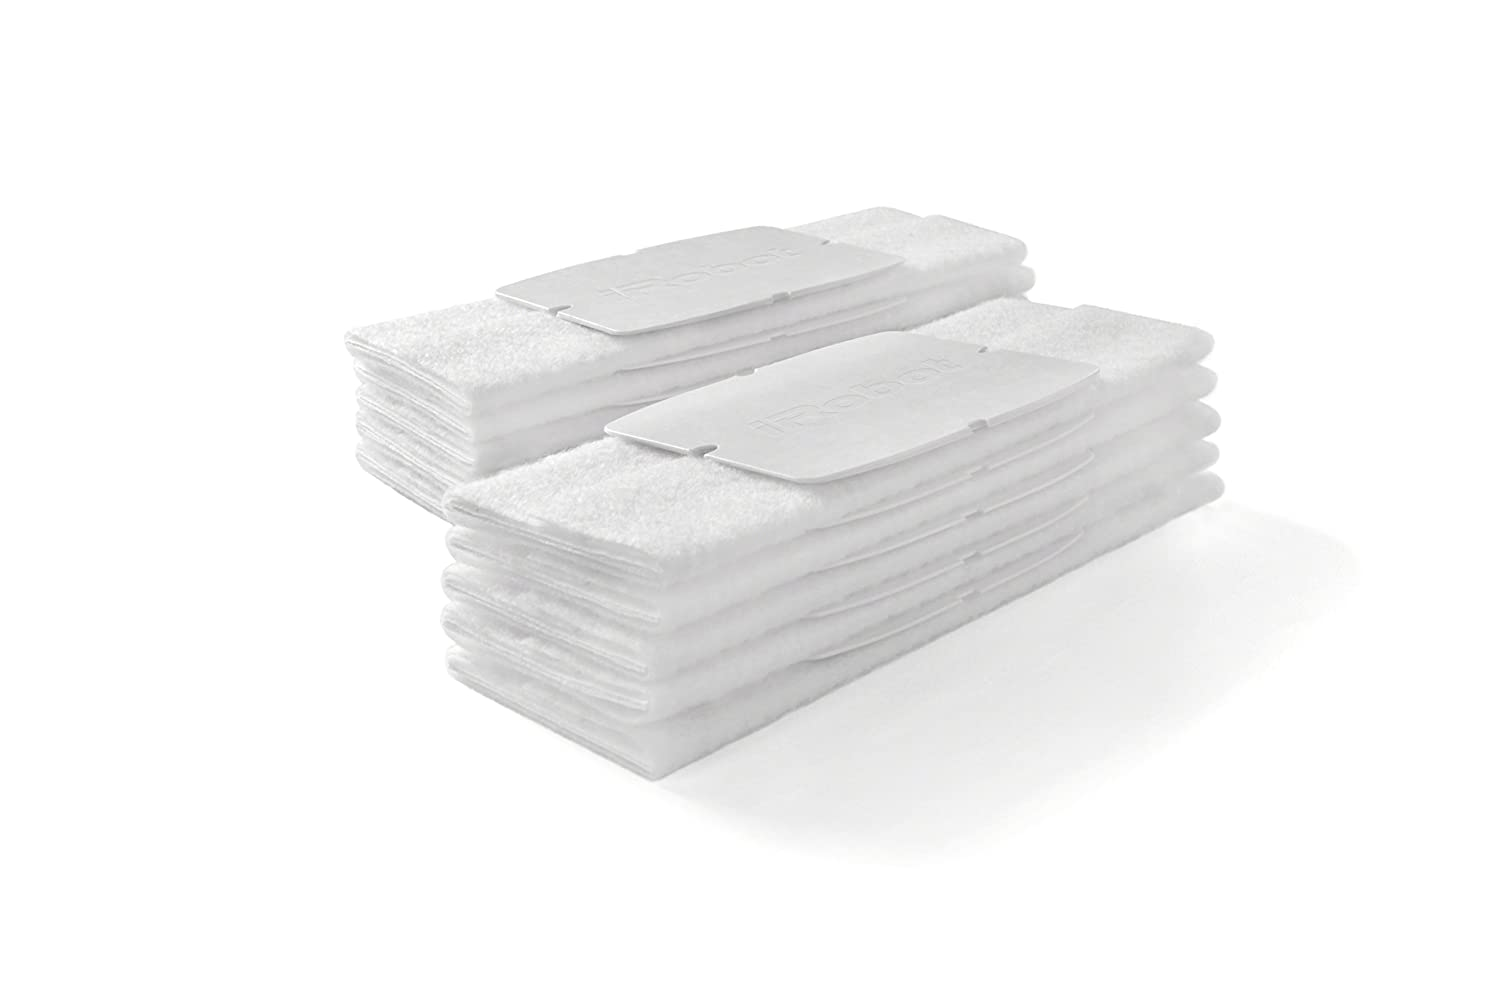 iRobot Dry Sweeping Pads 10 Pack